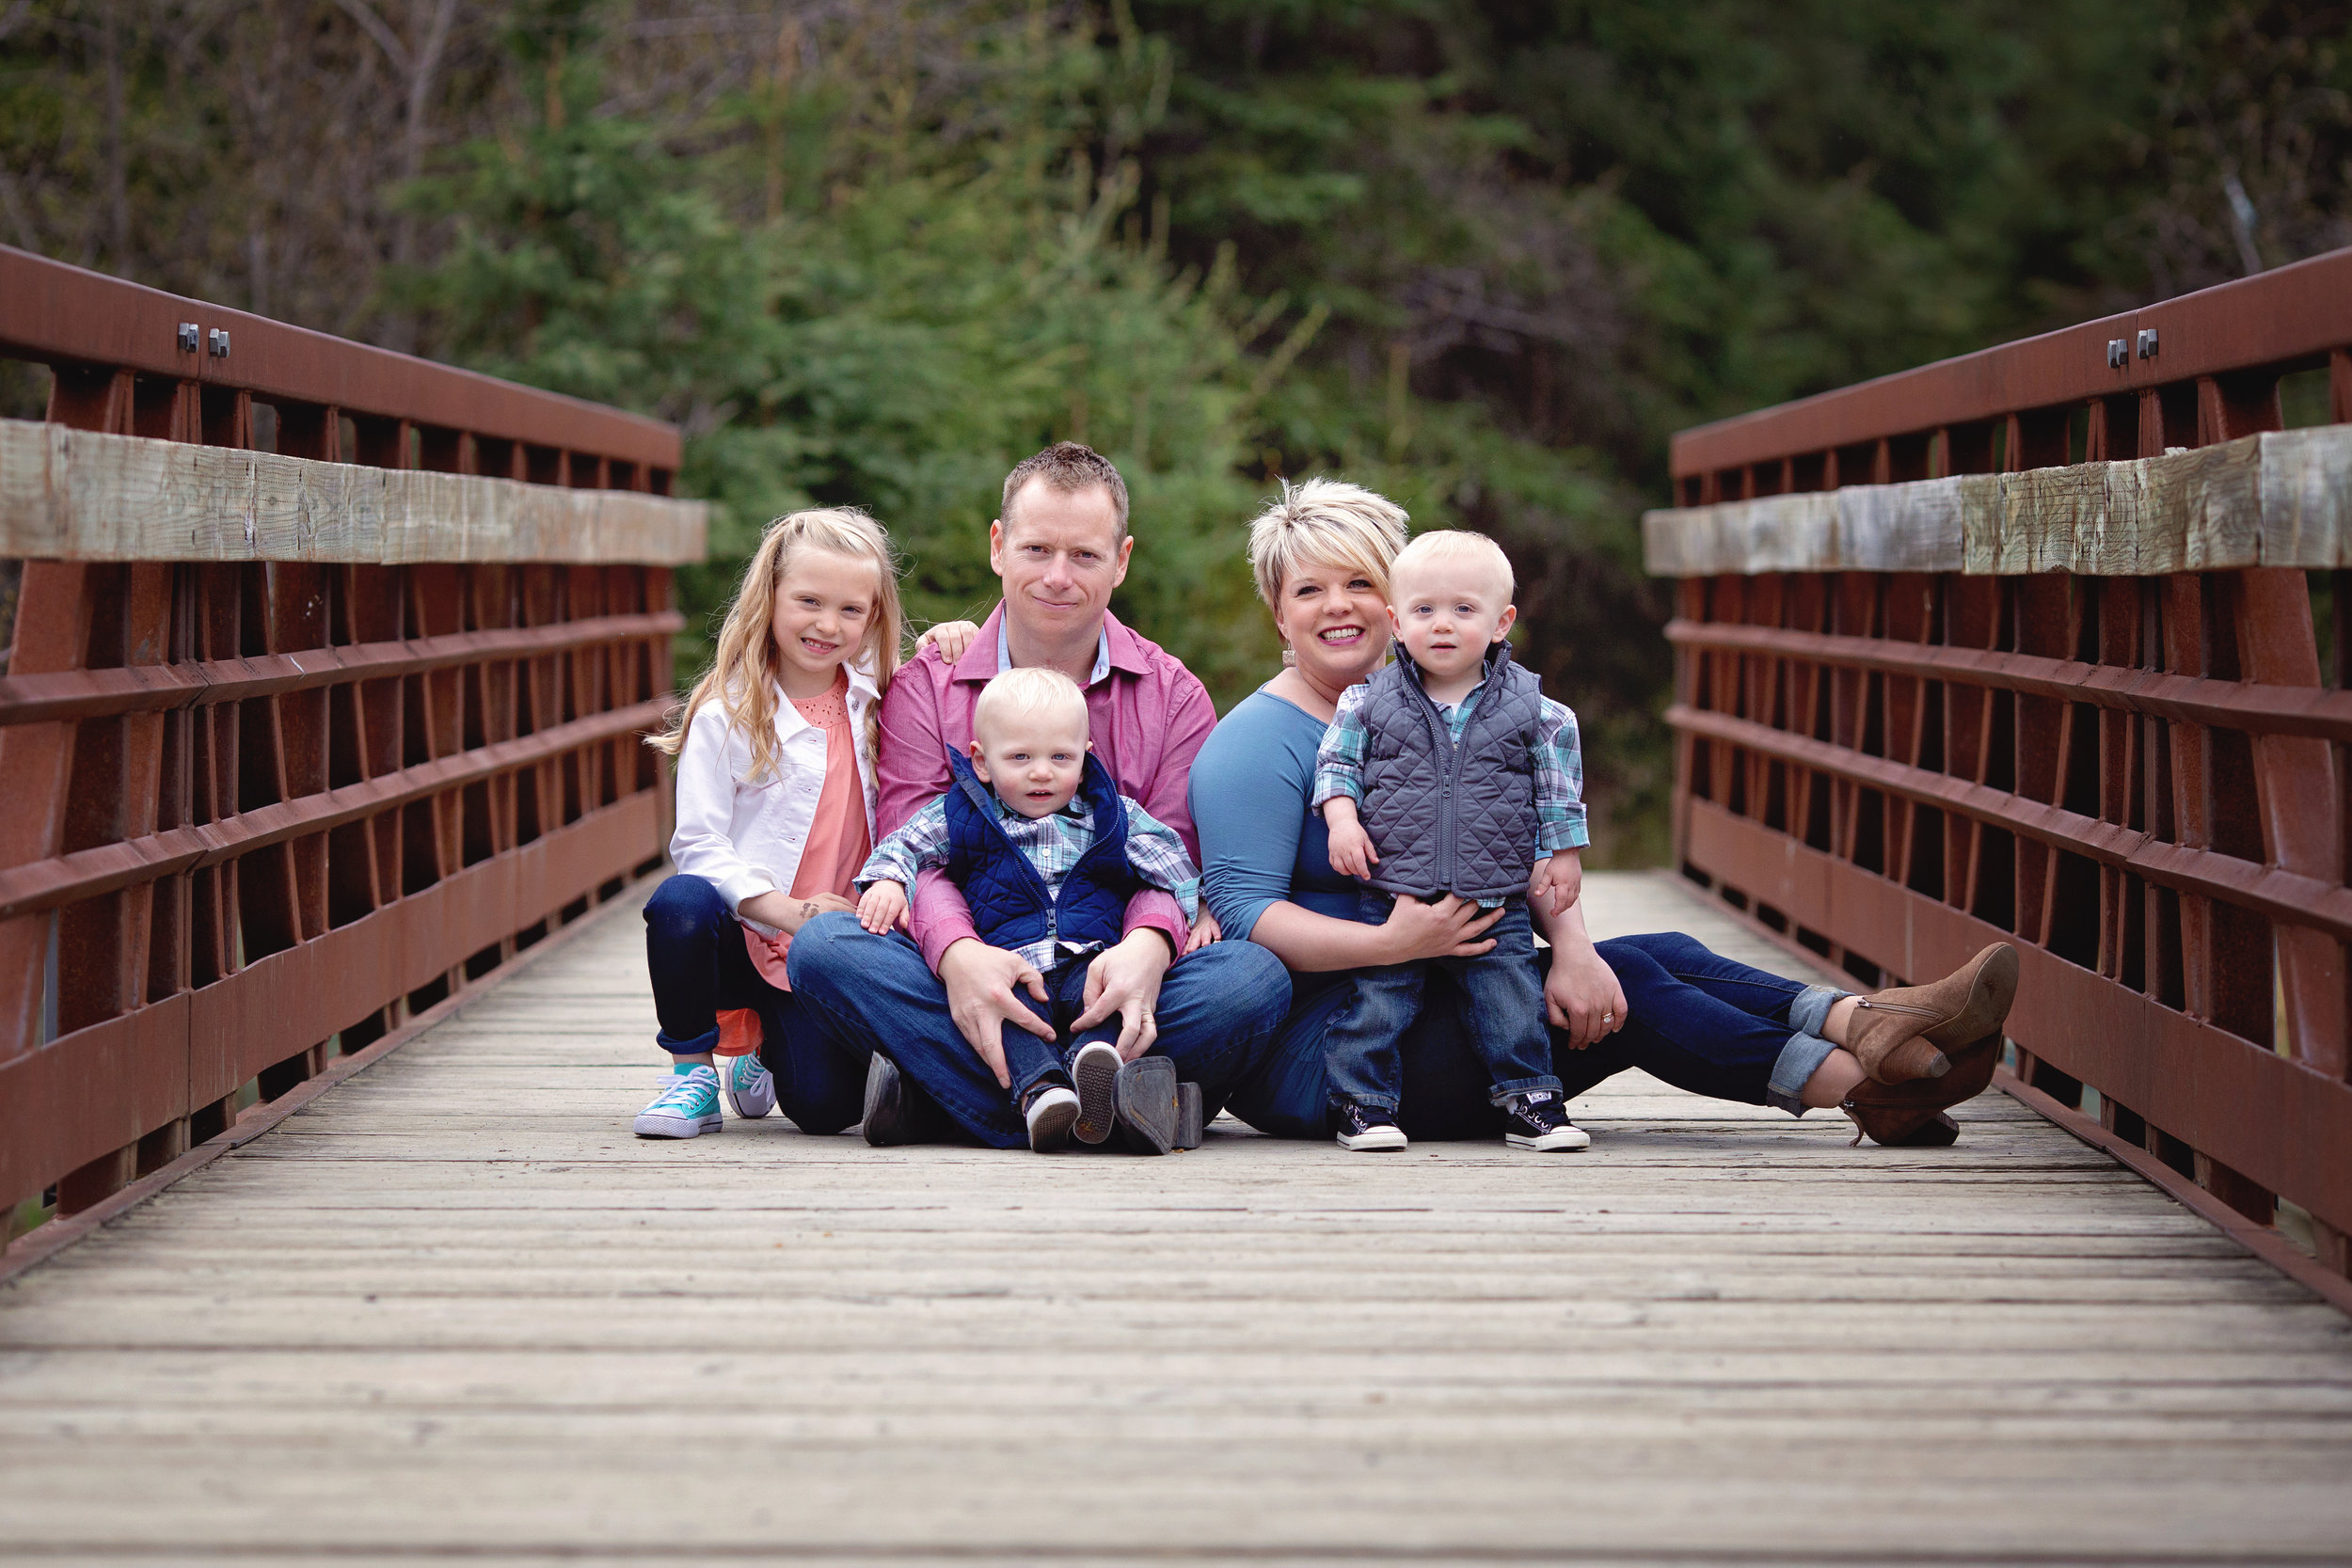 anchorage-family-photographer-2.jpg